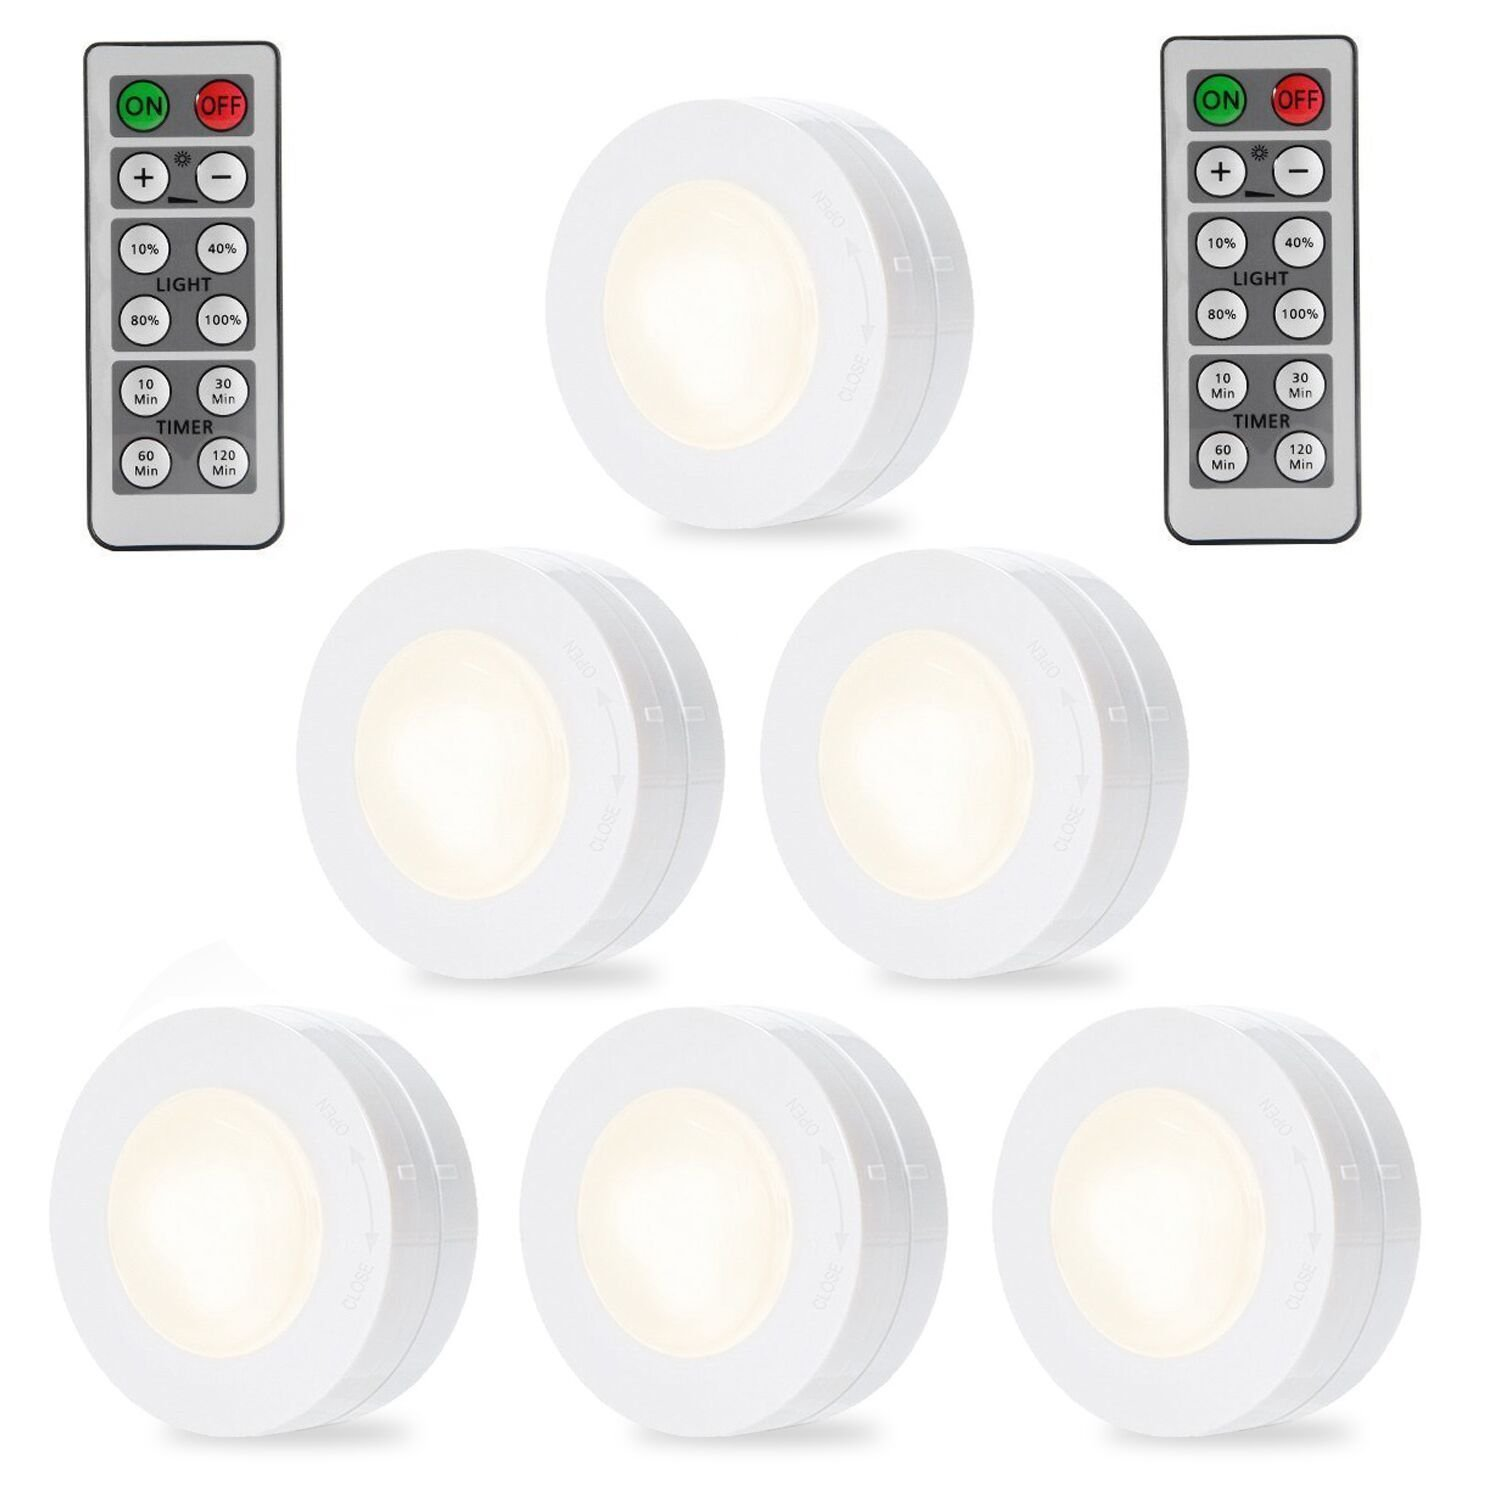 SOLLED Wireless LED Puck Lights, Kitchen Under Cabinet Lighting with Remote Control, Battery Powered Dimmable Closet Lights, 4000K Natural Light-6 Pack